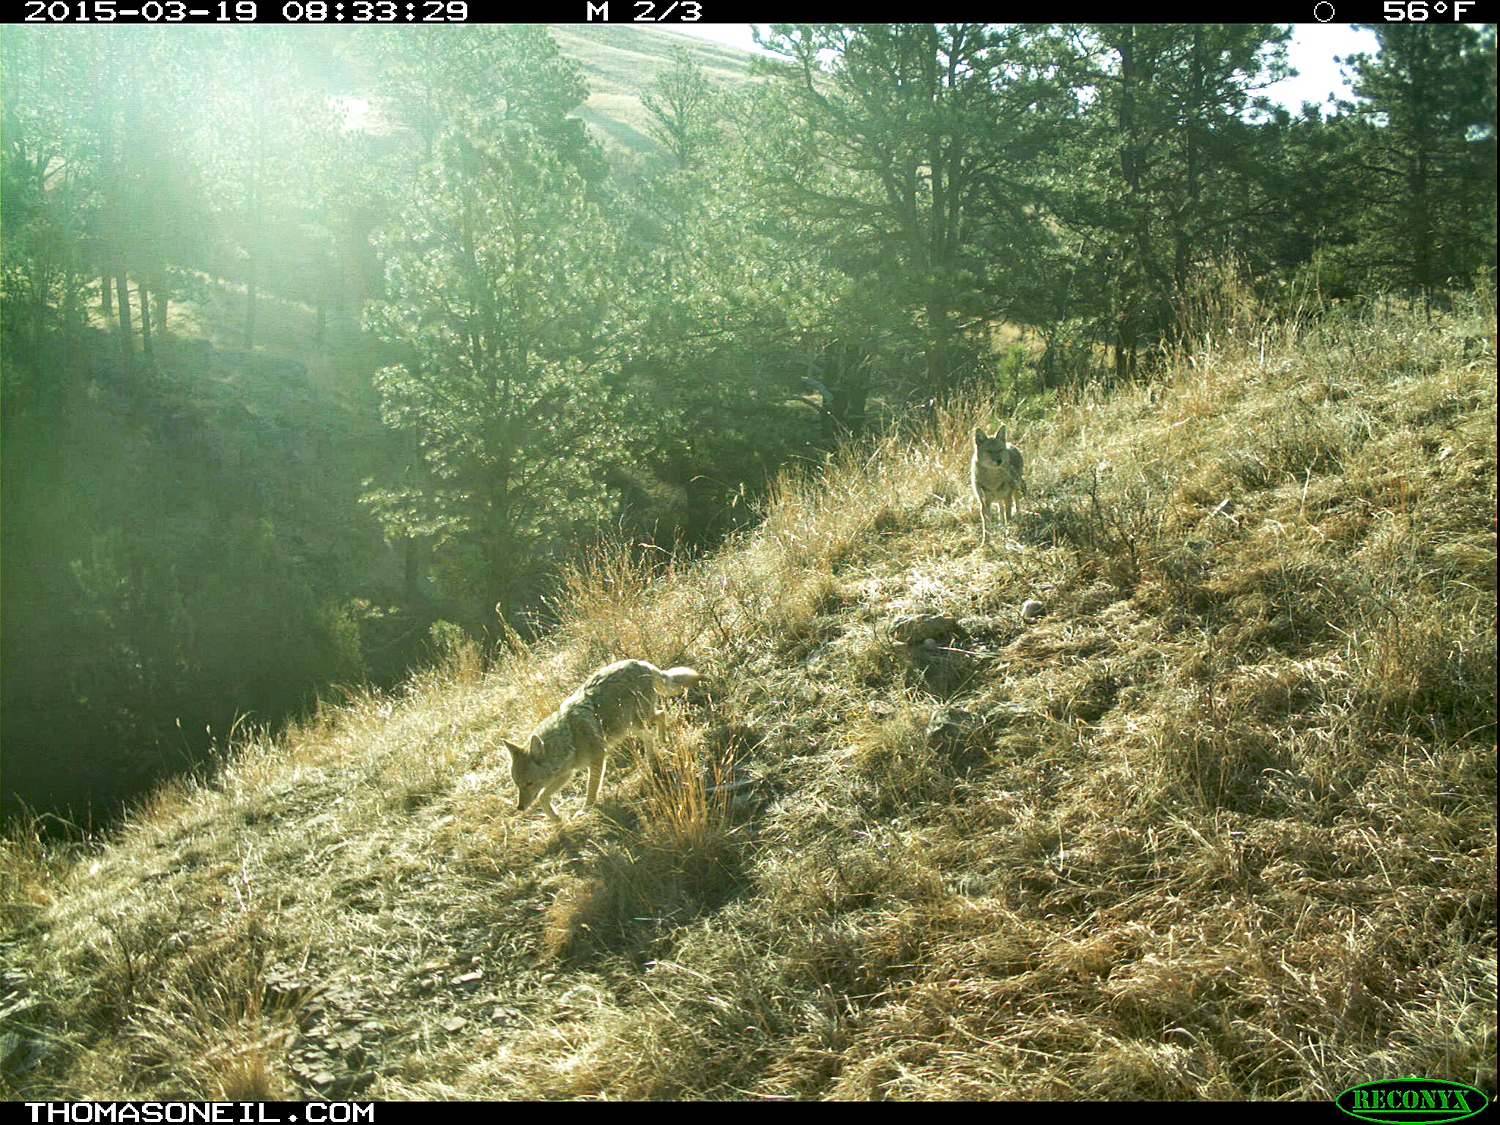 Two coyotes on trailcam, Wind Cave National Park, March 2015,   Click for next photo.